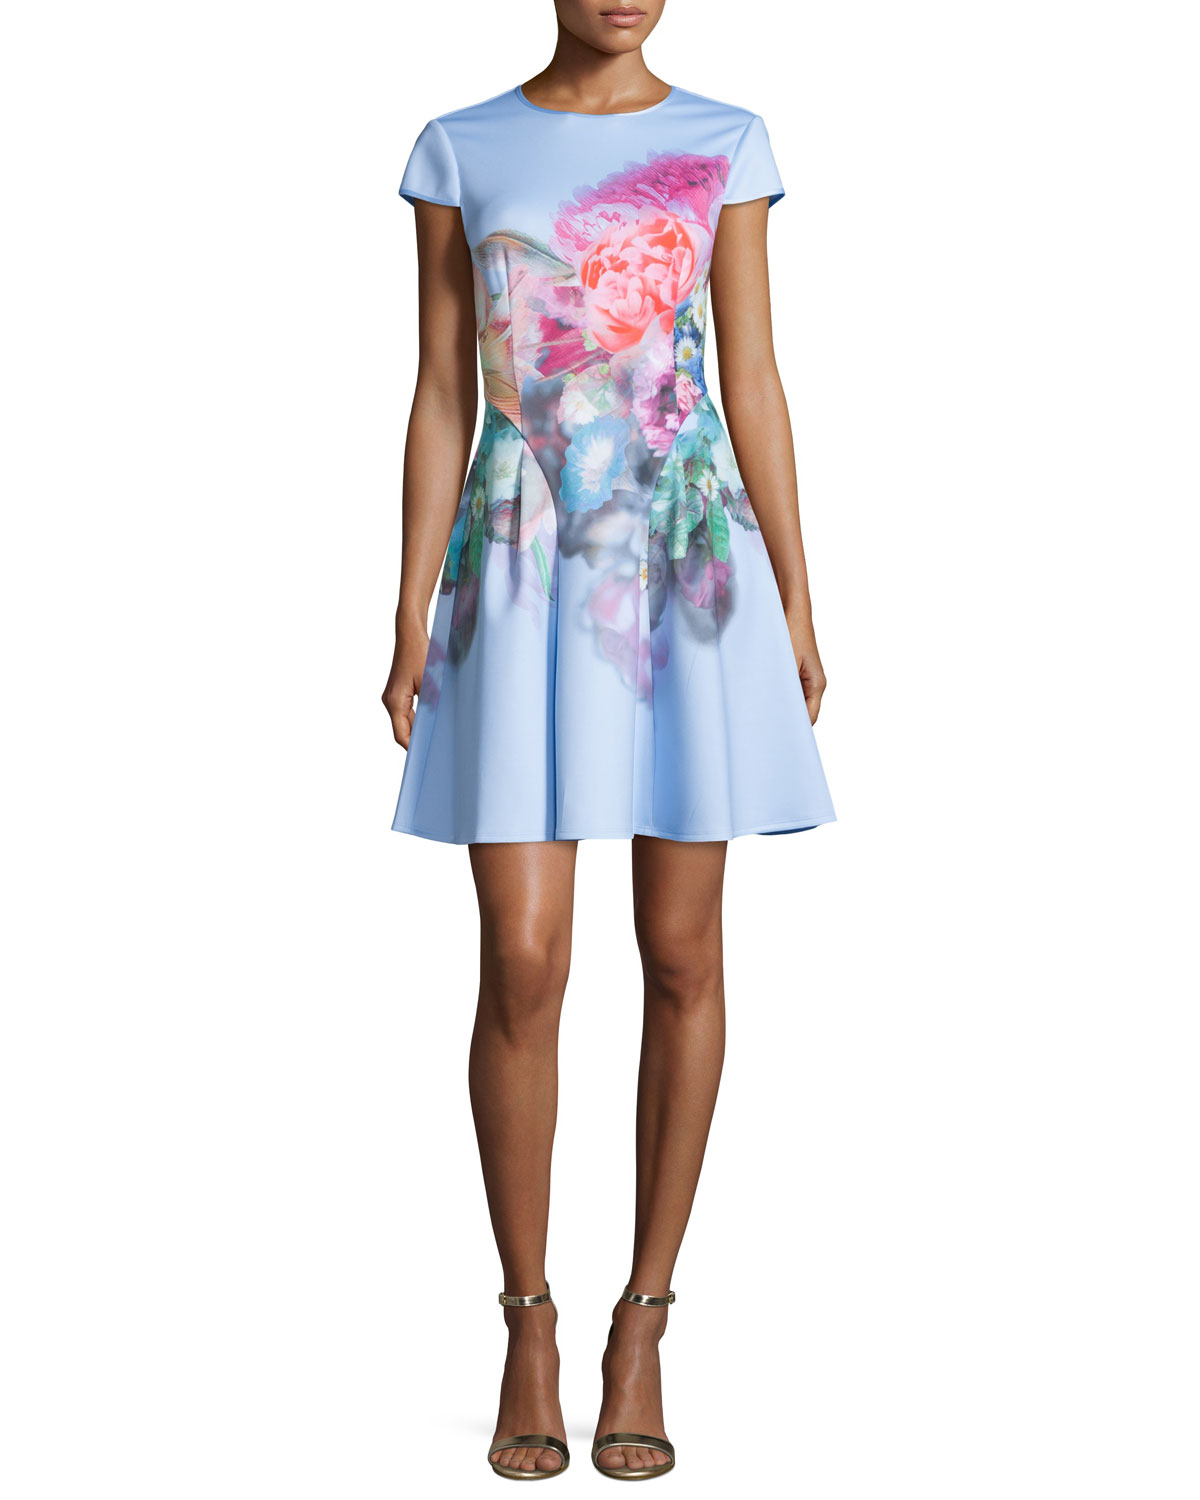 102704b3b76 Ted Baker London Bowkay Floral Fit   Flare Dress